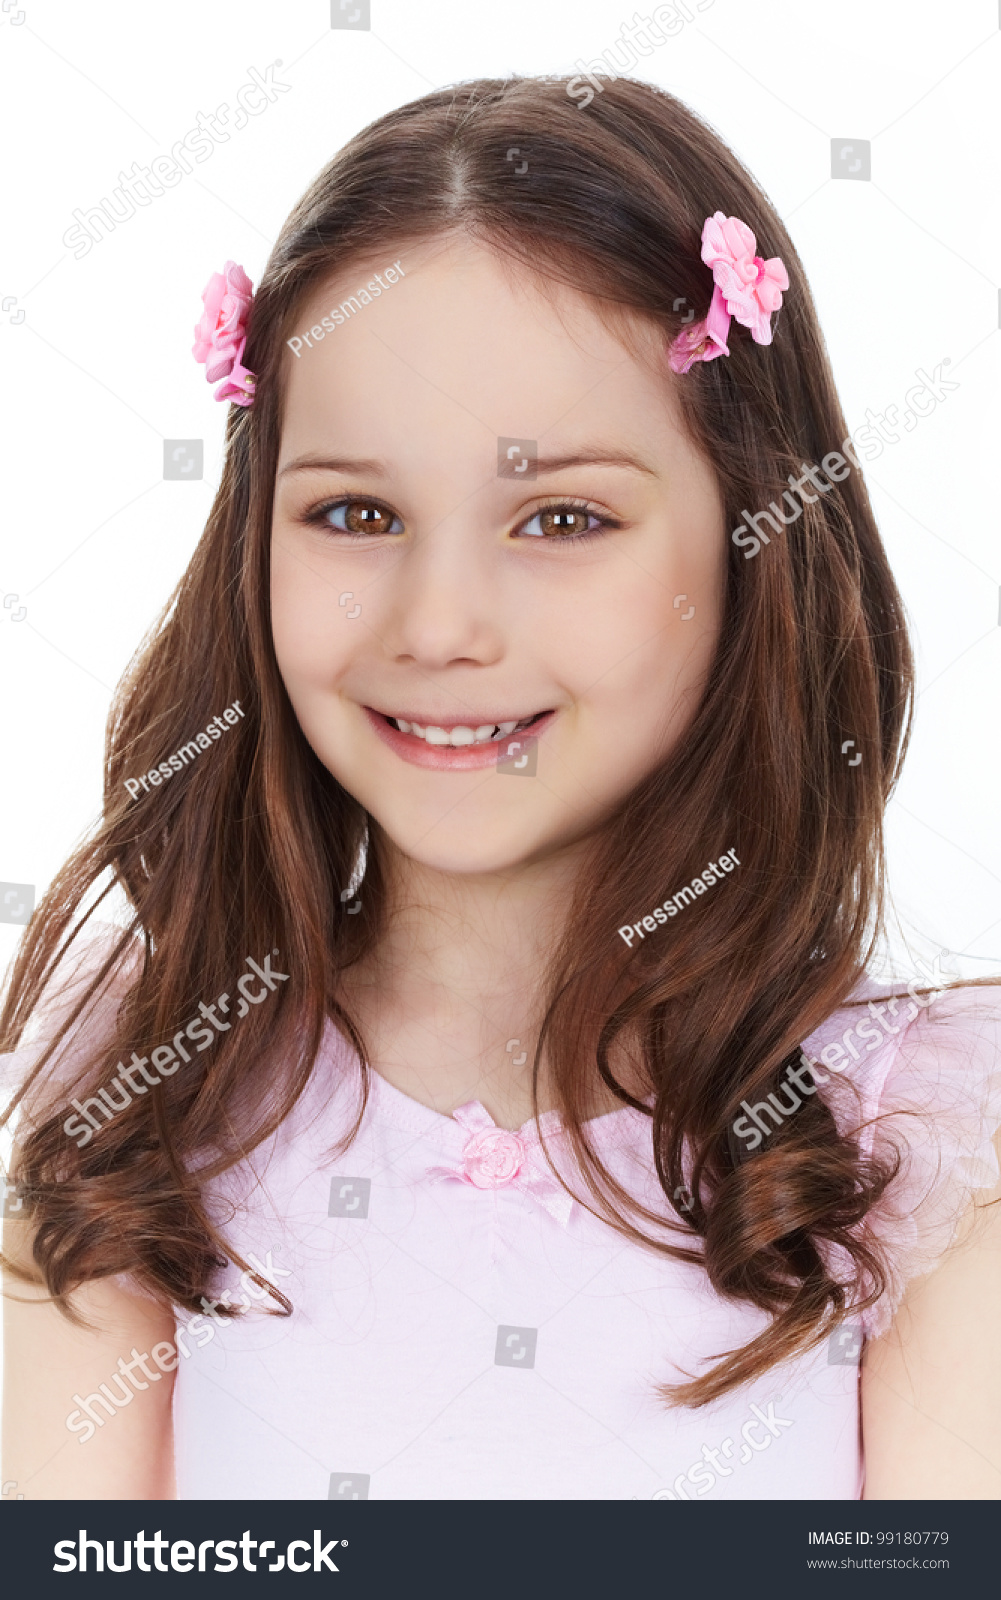 Vertical Portrait Of Pretty 14 Year Old Girl Stock Image: Vertical Portrait Of A Charming Girl Smiling At Camera